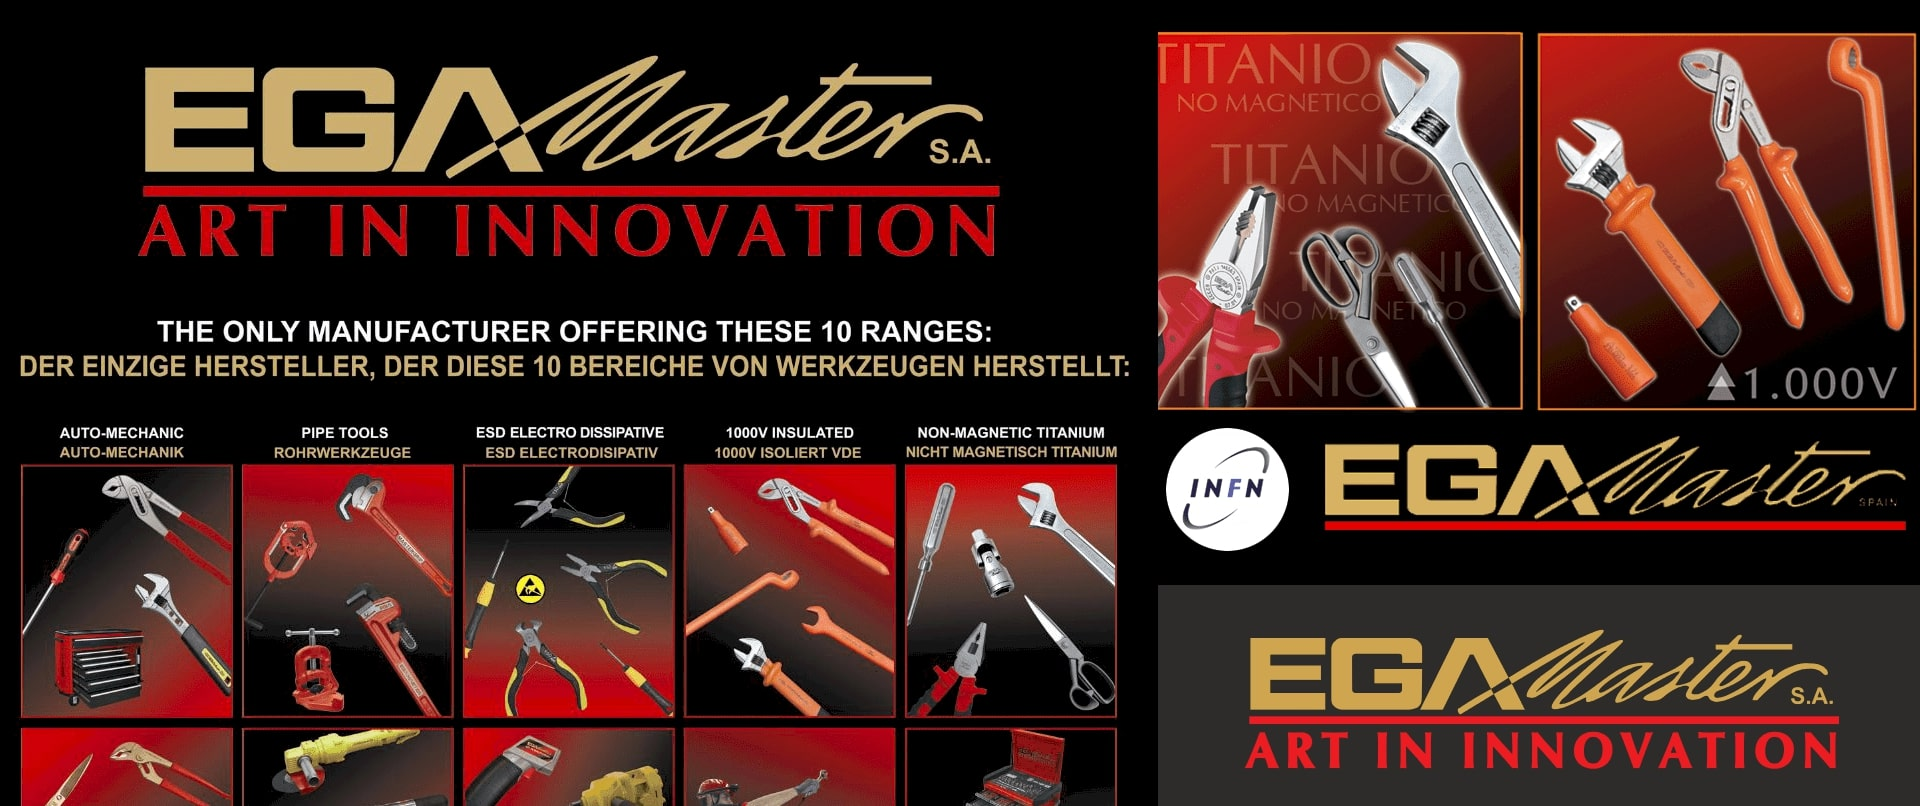 Egamaster hand tool suppliers